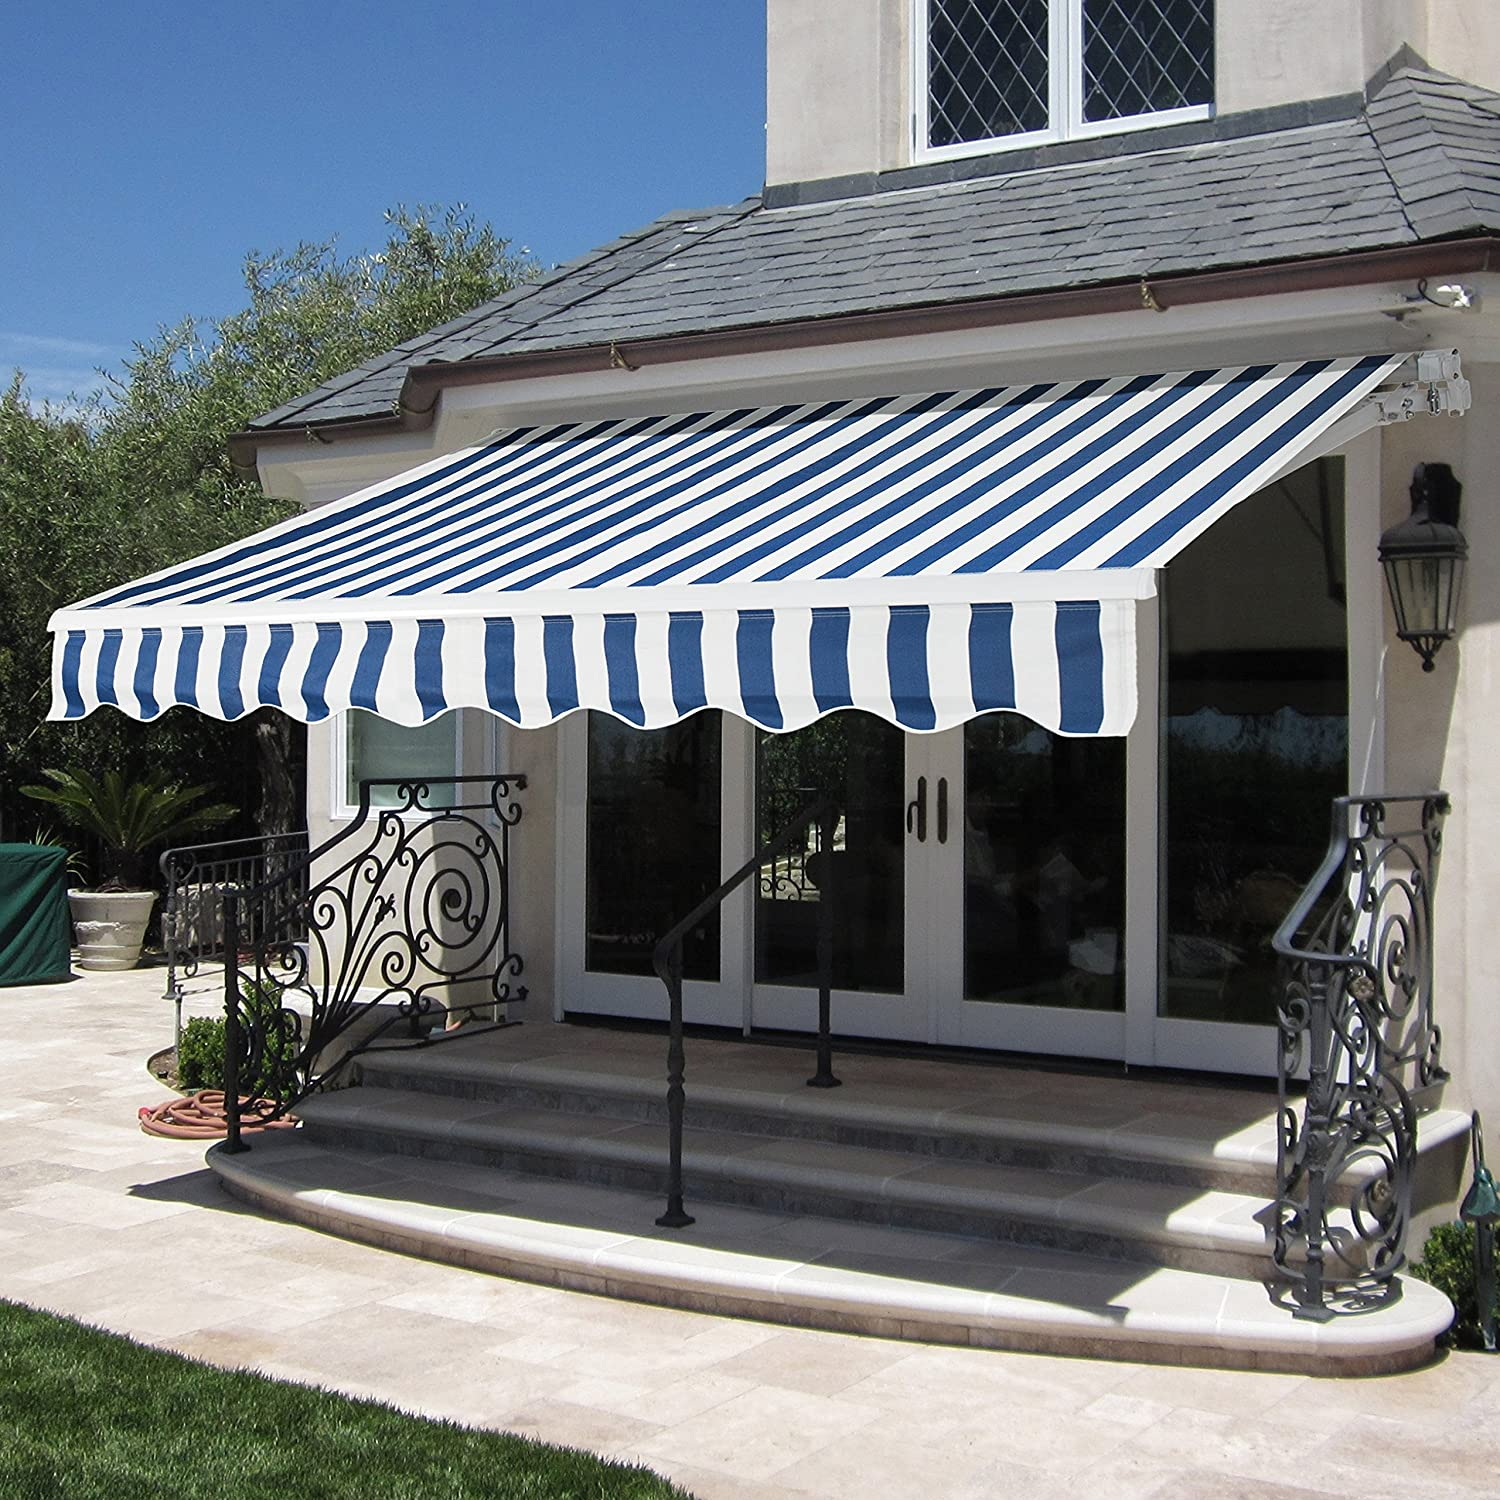 by ke in awnings manual design outdoor product awning prod commercial flat a cantarutti robby box qubica